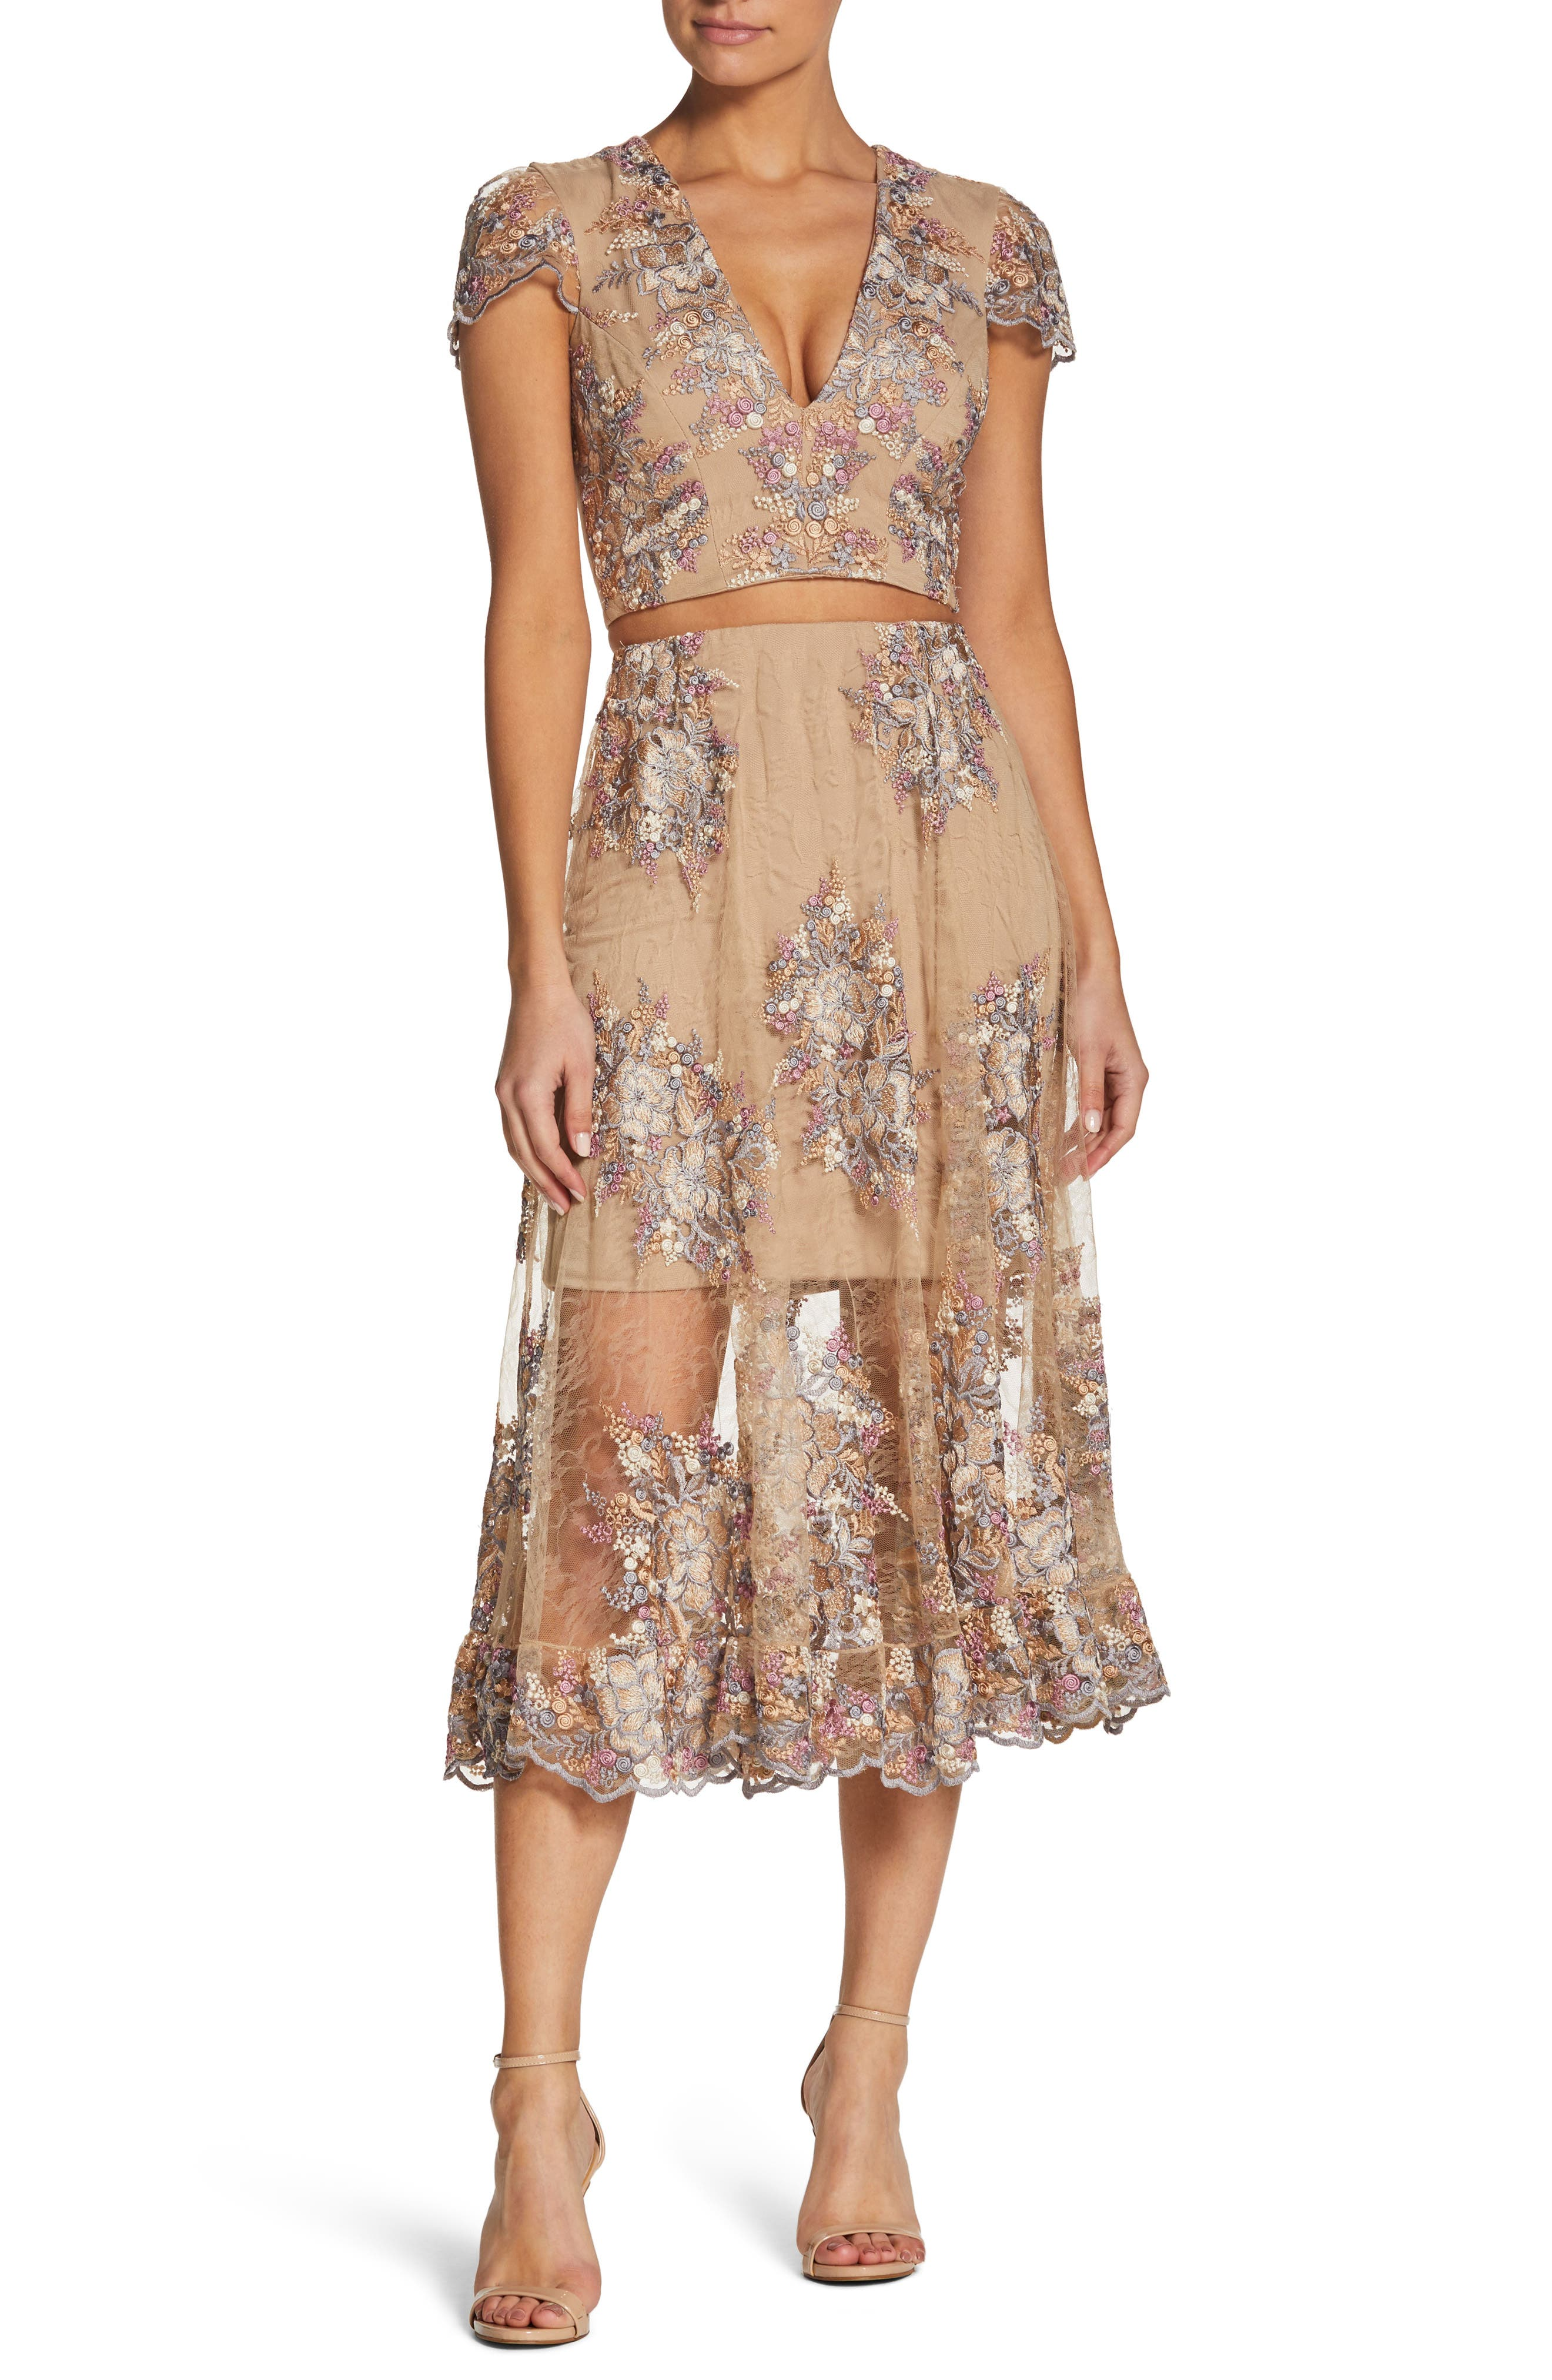 Juliana Two-Piece Dress,                             Main thumbnail 1, color,                             Nude/ Floral